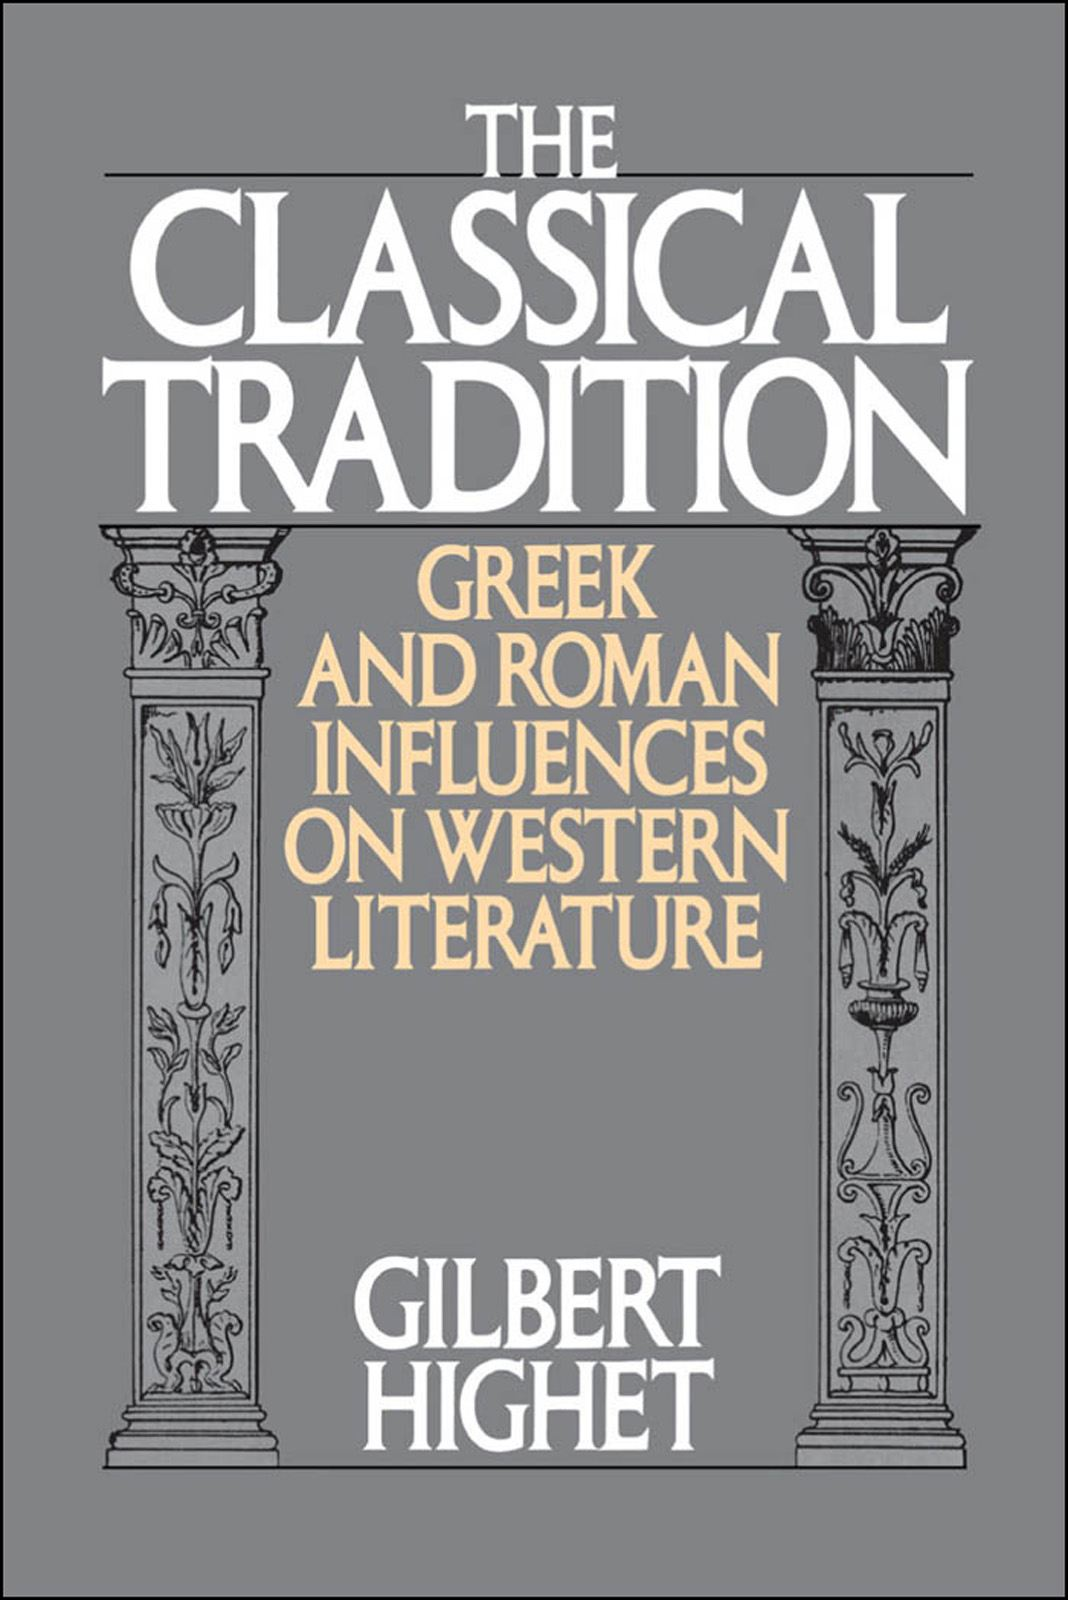 The Classical Tradition : Greek and Roman Influences on Western Literature